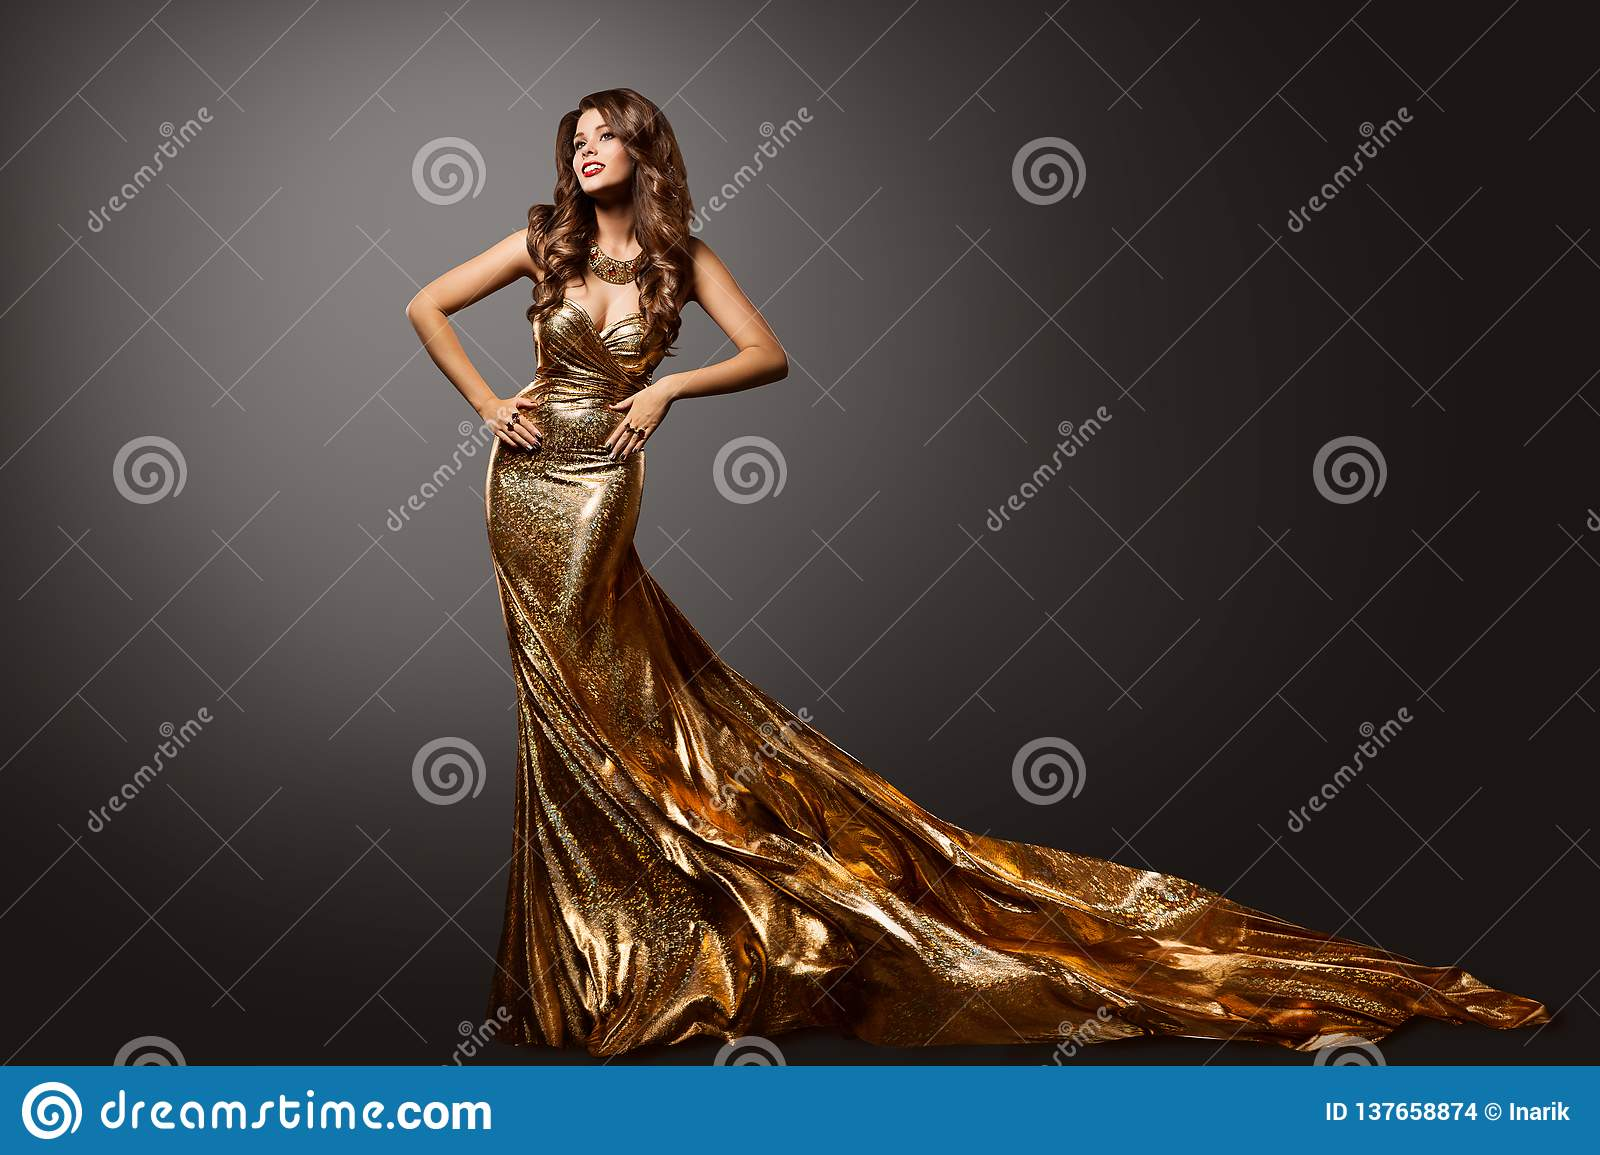 Woman Gold Dress, Fashion Model Gown with Long Tail Train, Beauty Portrait